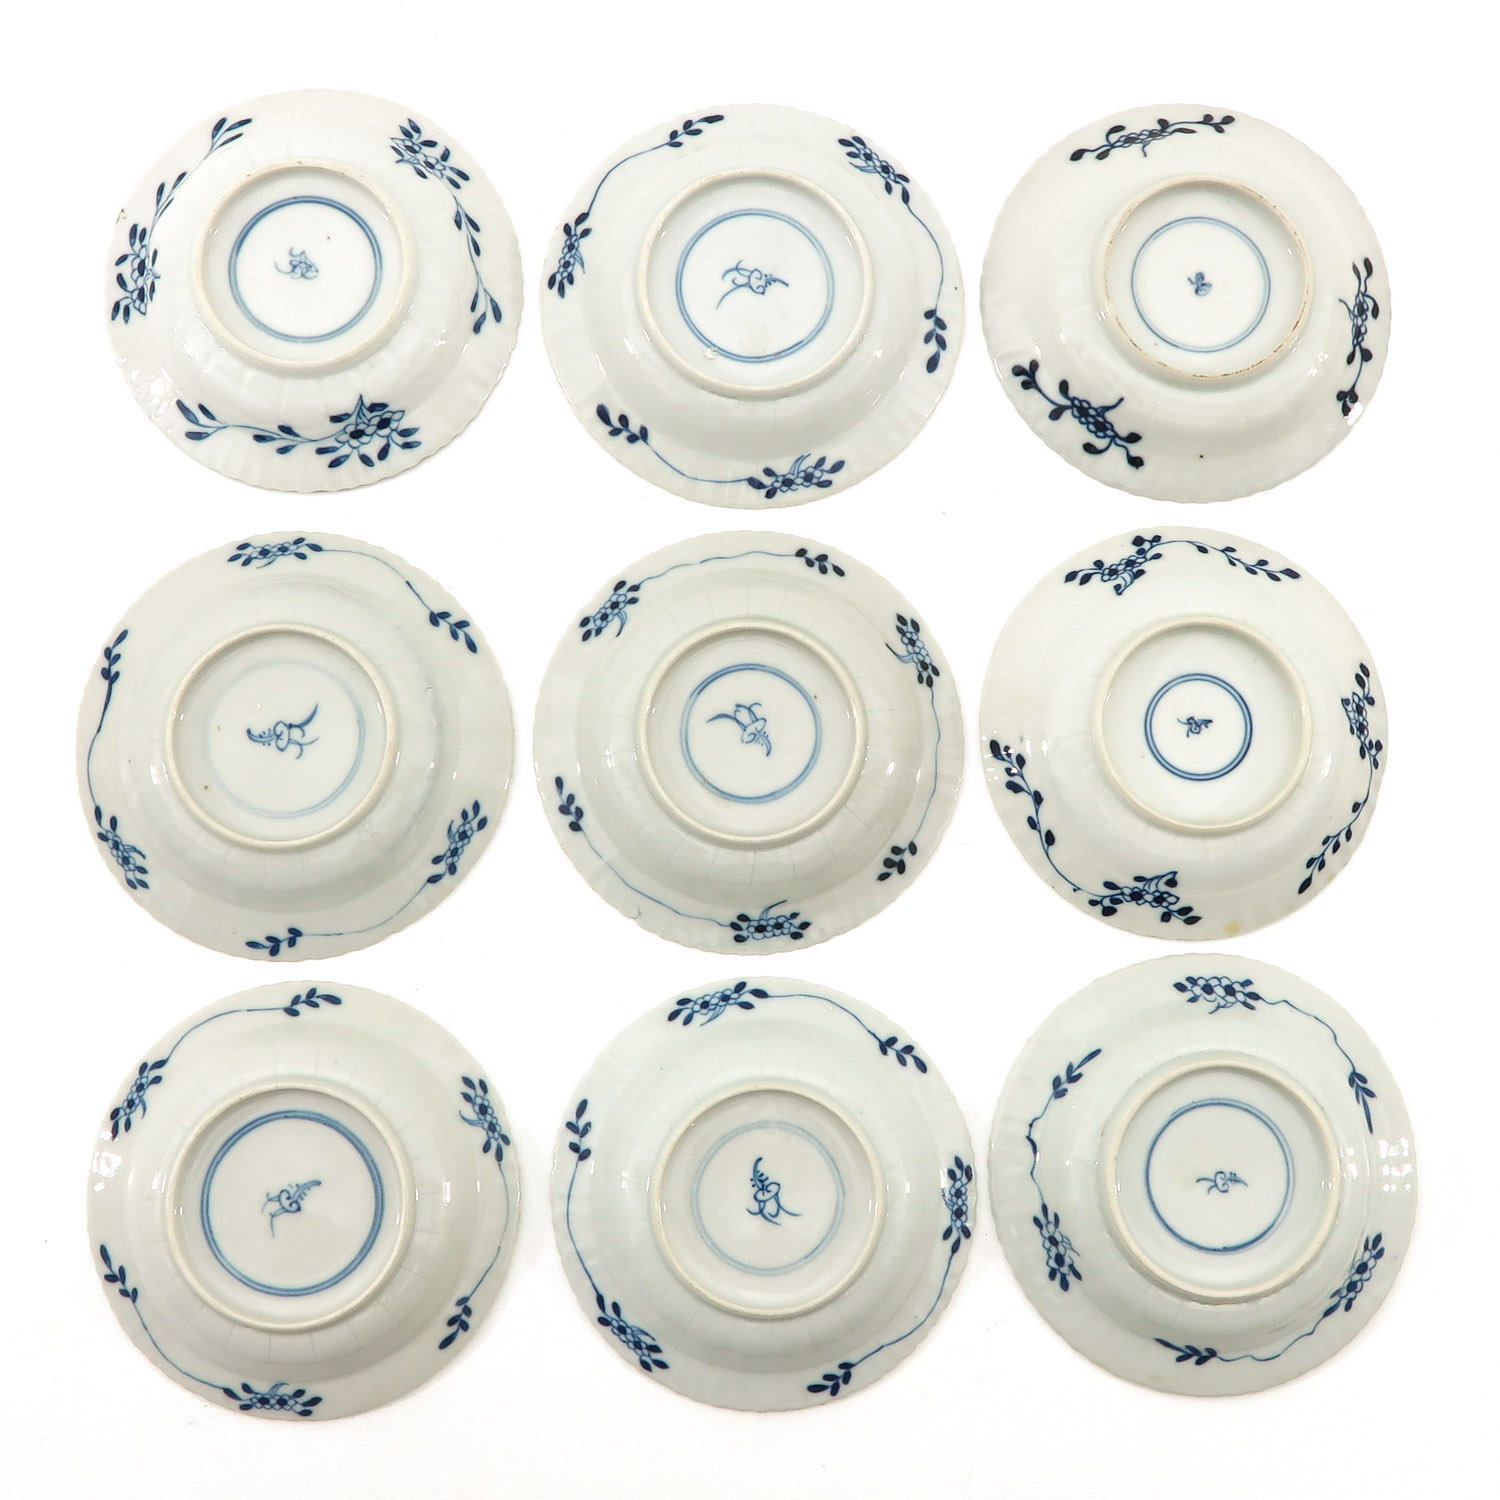 A Collection of Cups and Saucers - Image 6 of 10